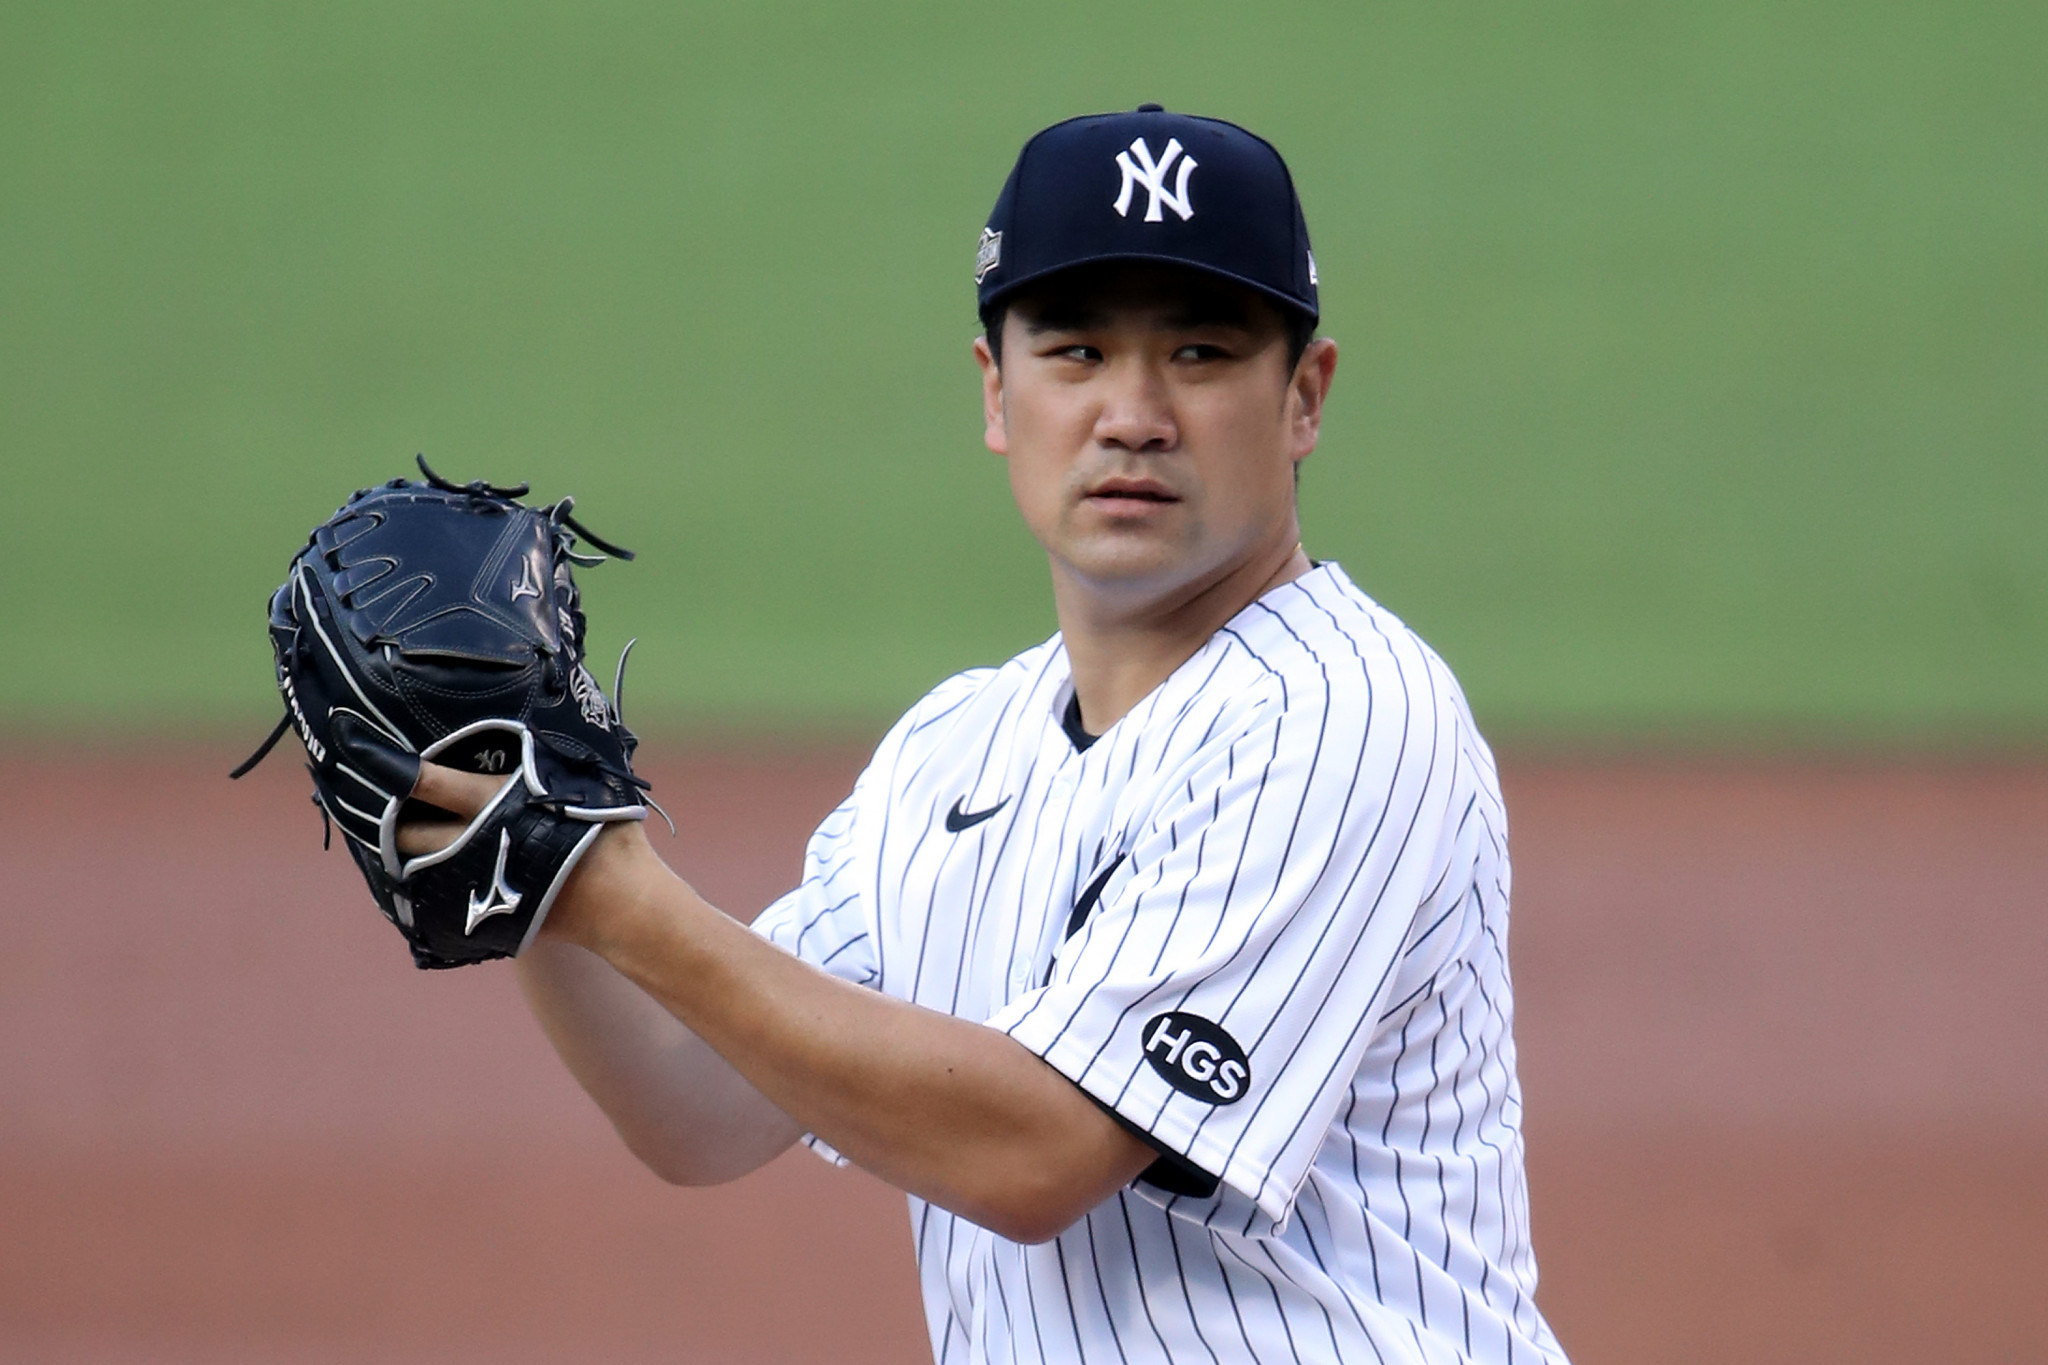 Baseball star Masahiro Tanaka has returned from the United States to play in Japan ©Getty Images